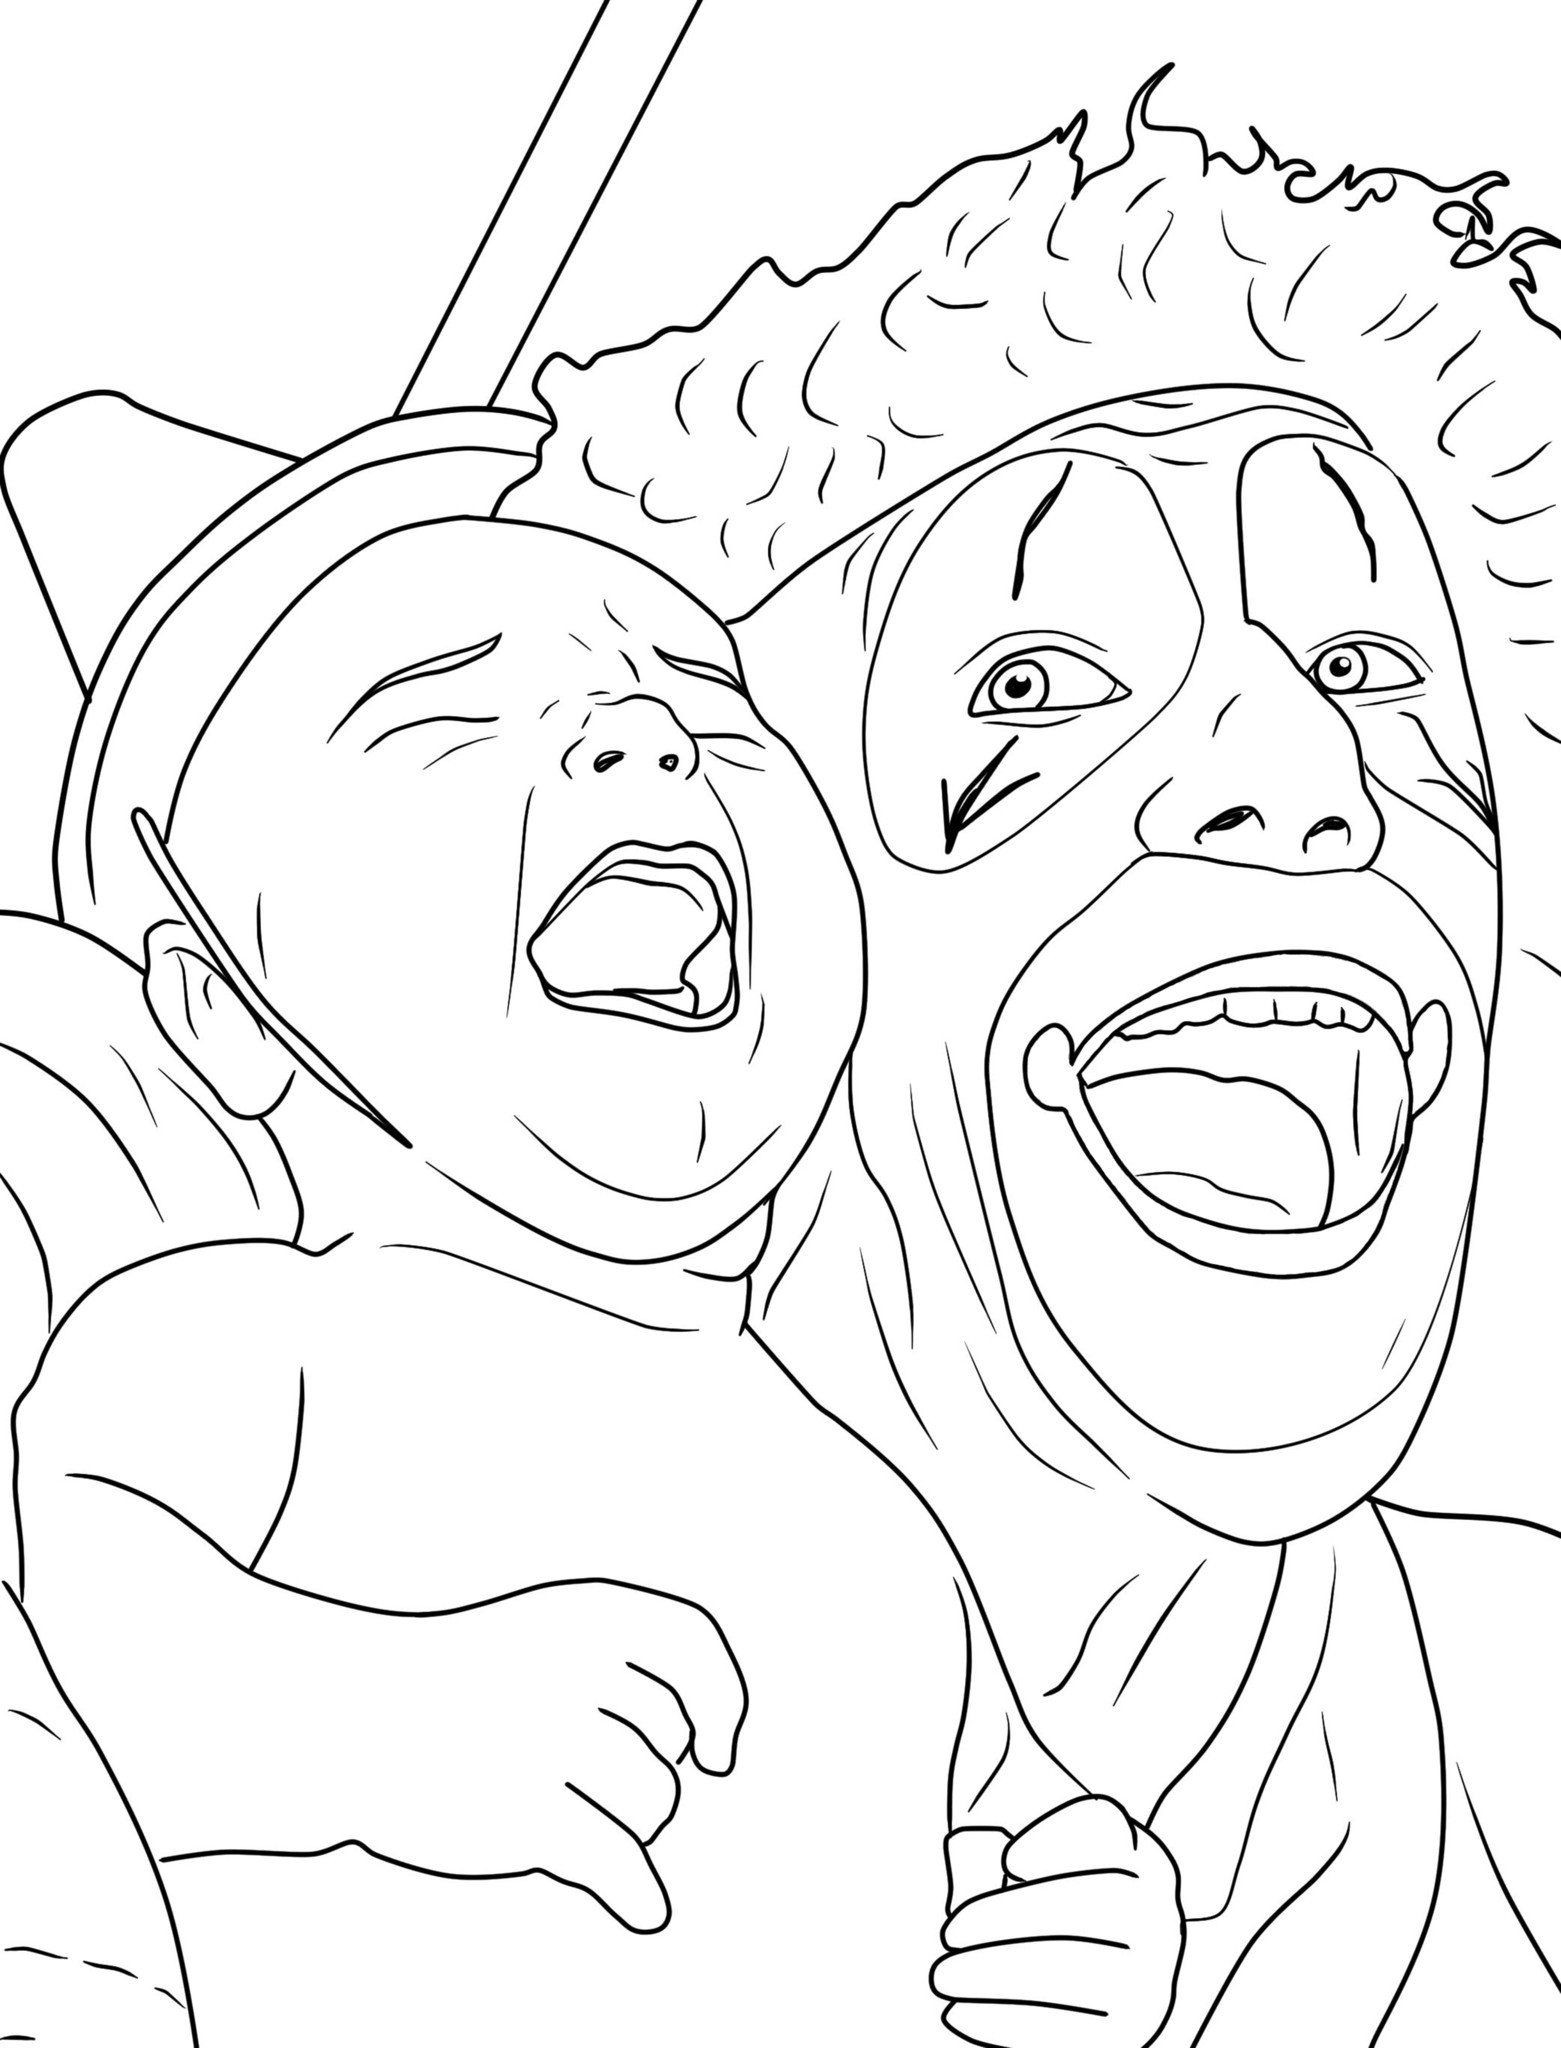 Creepy Coloring Pages  Creepy Clown Coloring Pages Coloring Home